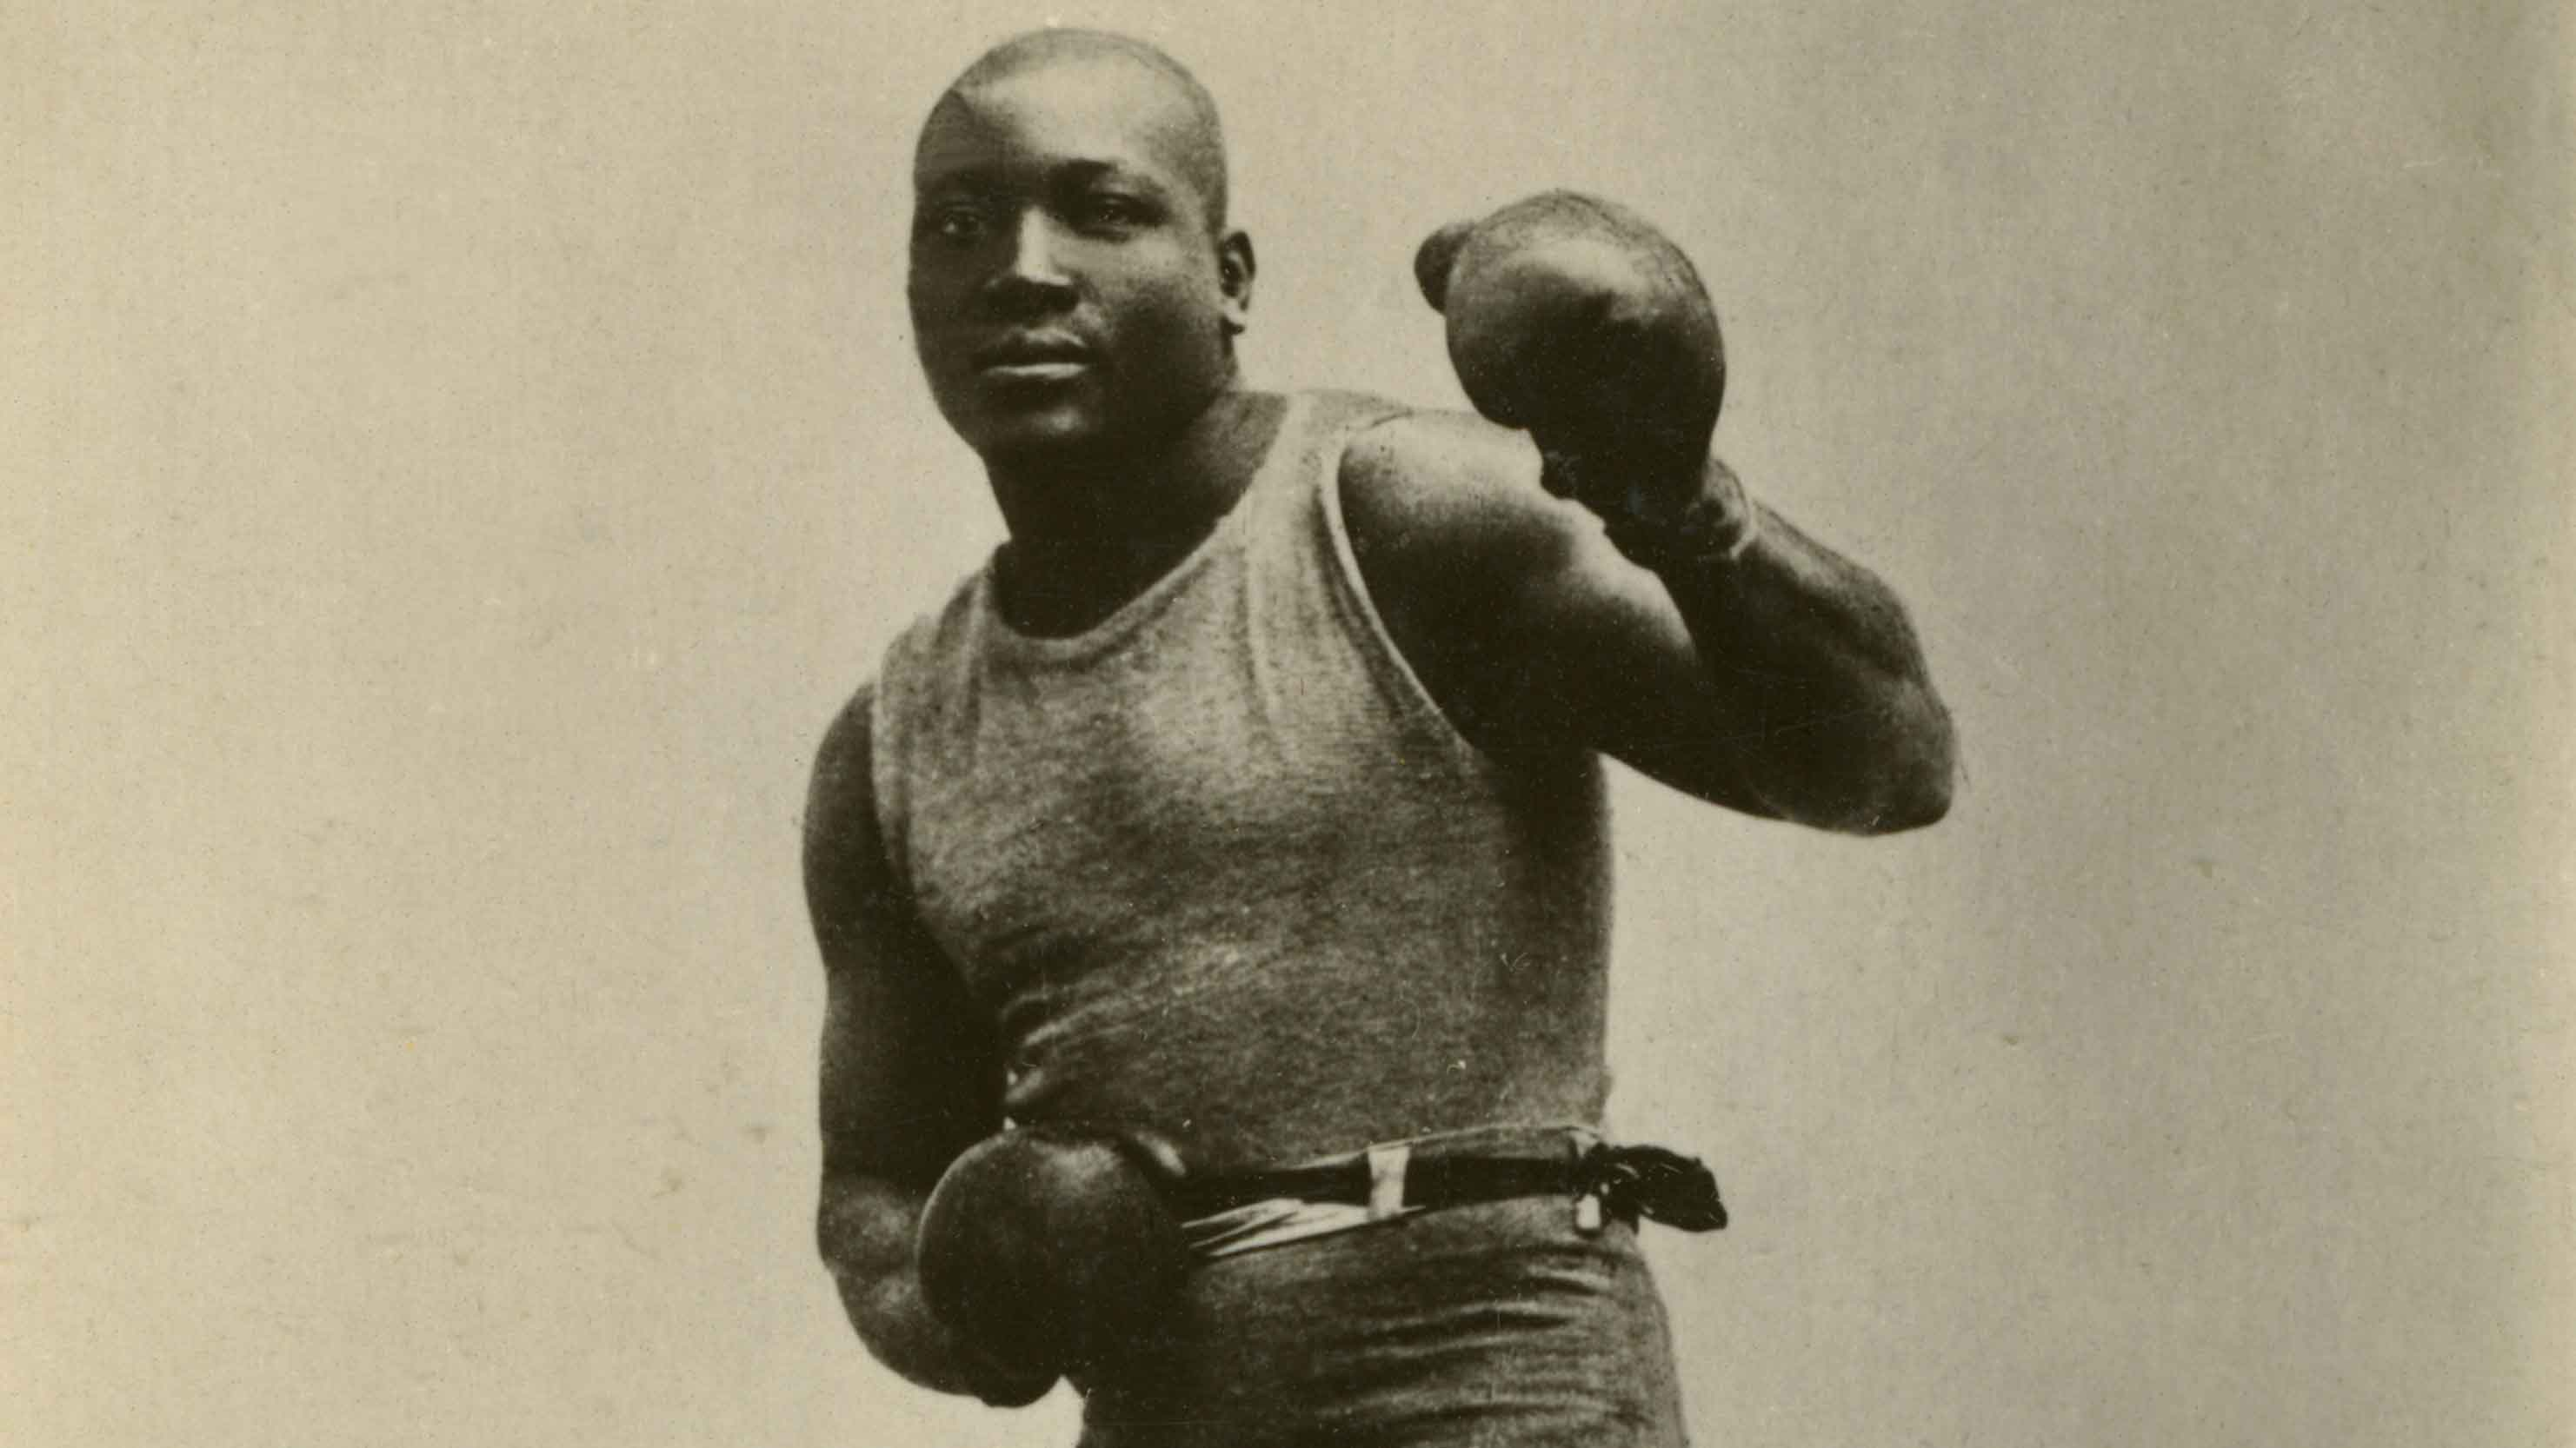 The 'White Slavery' Law That Brought Down Jack Johnson is